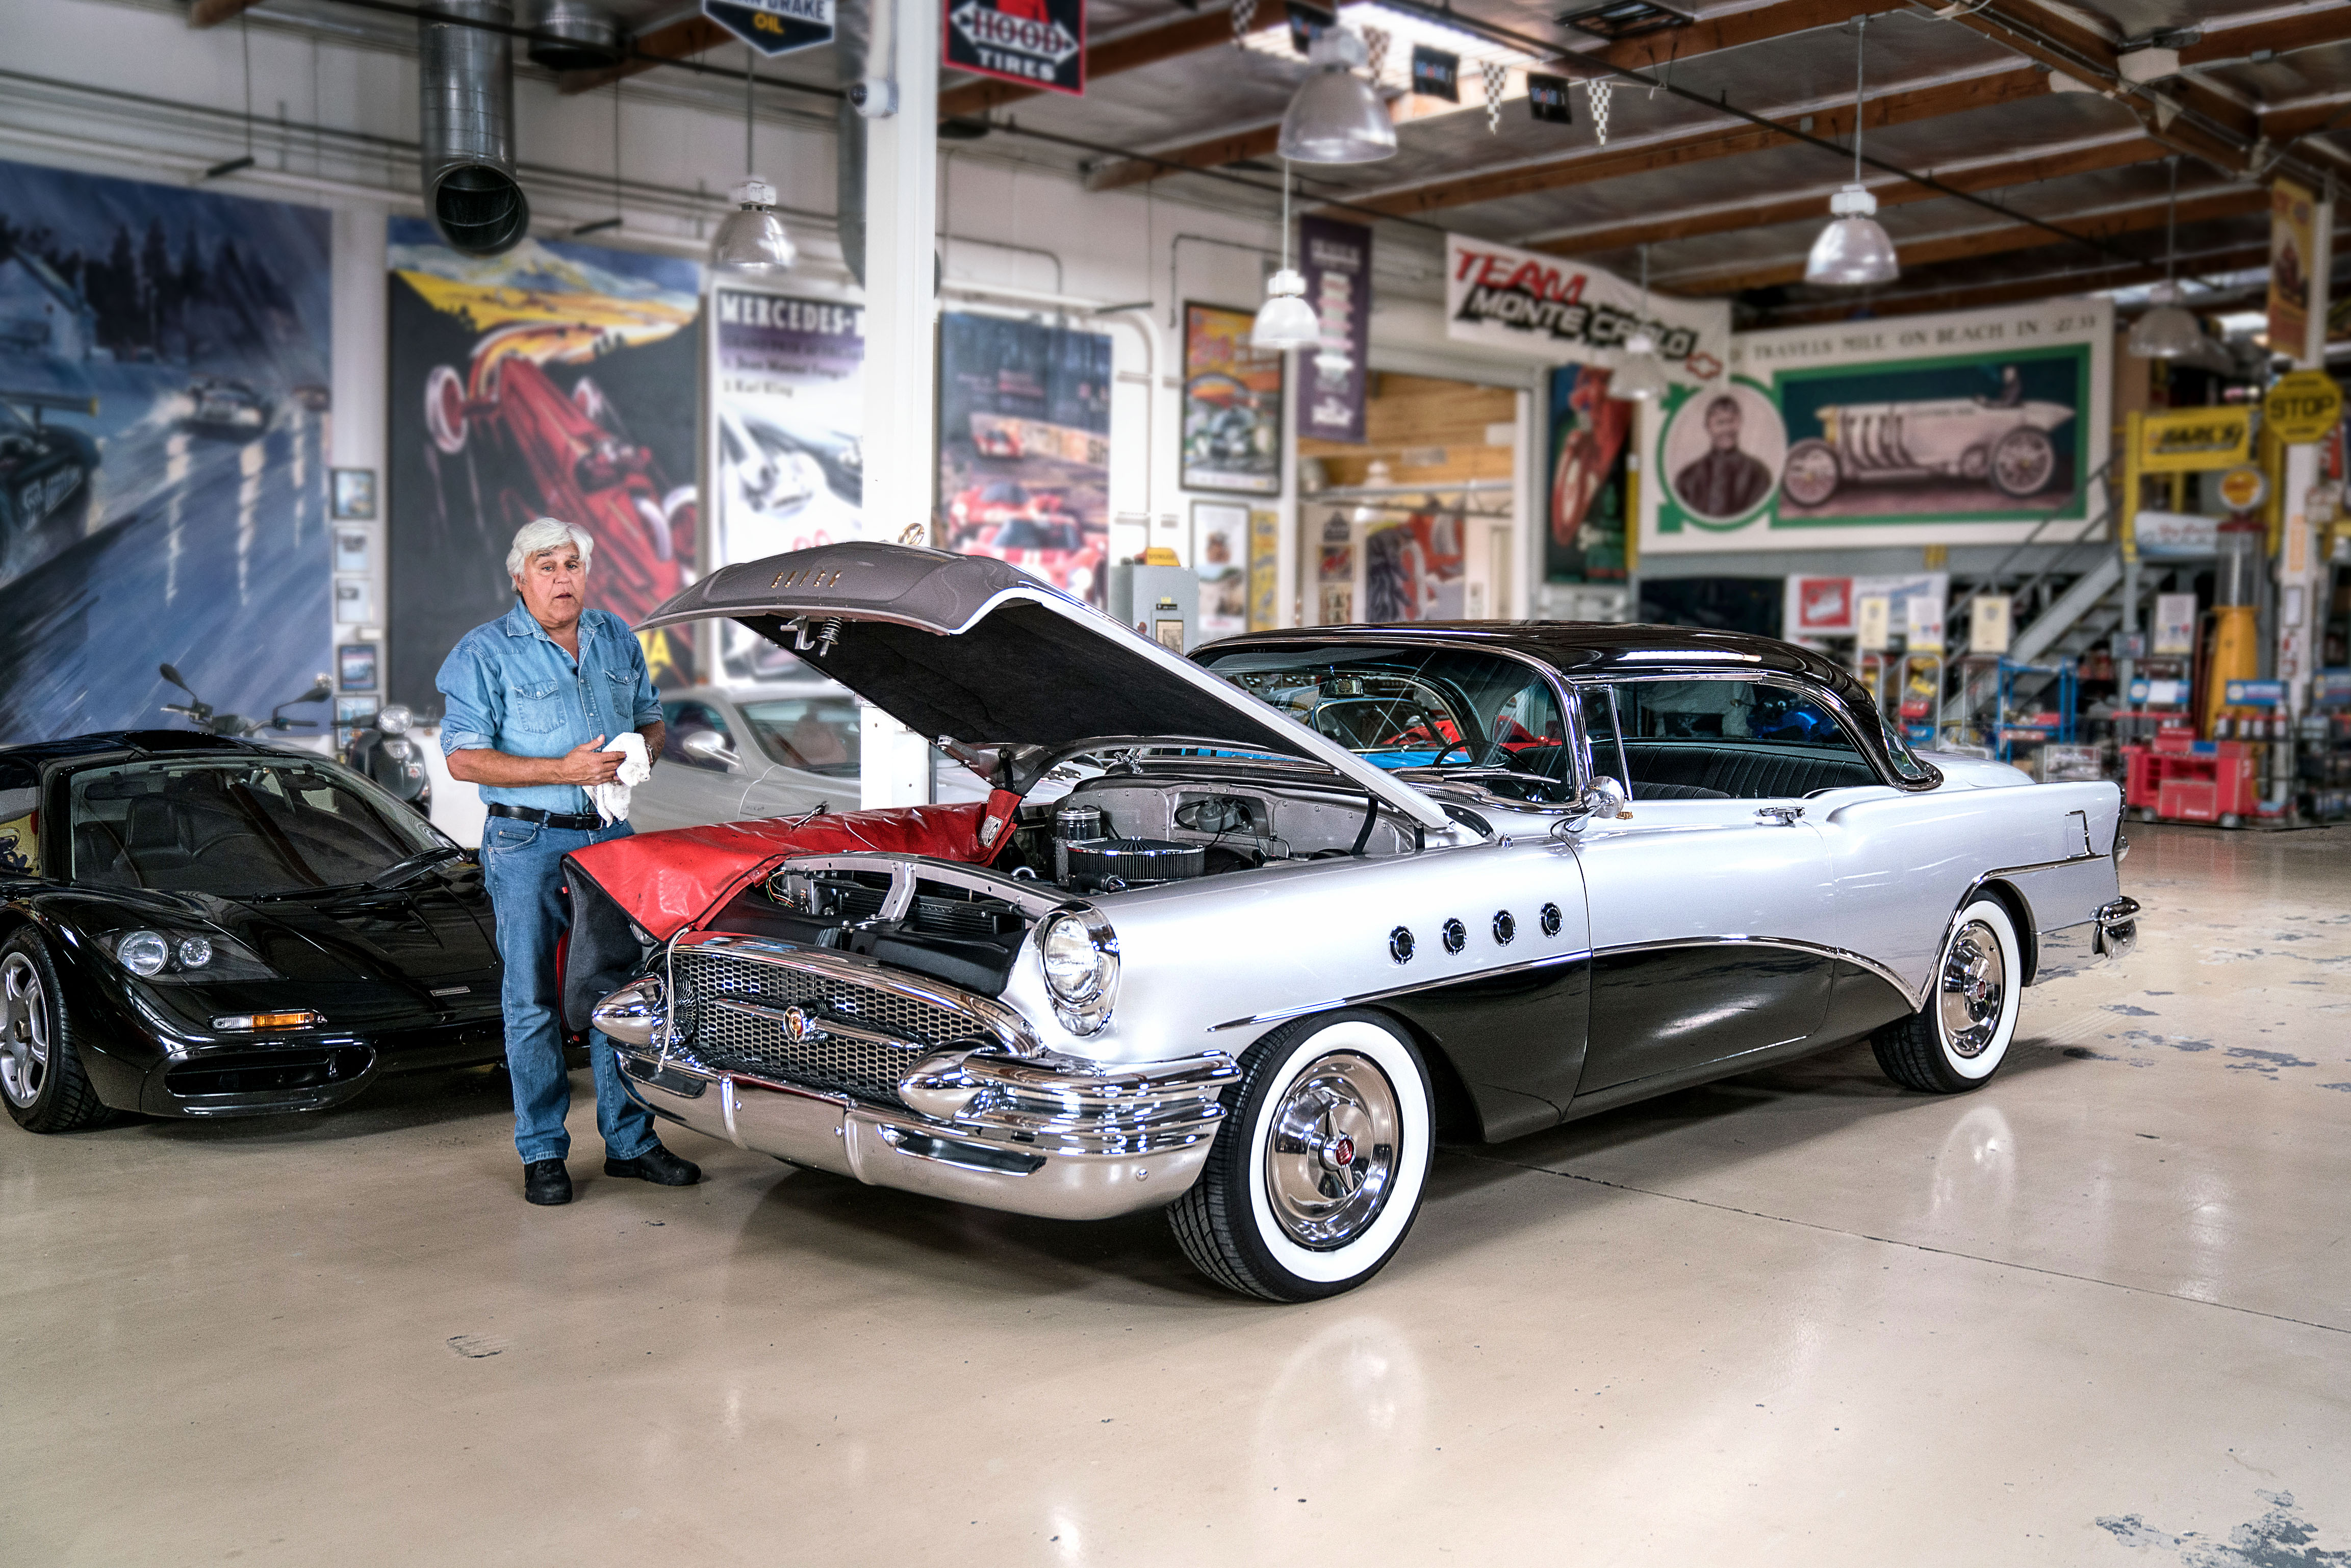 Jay Leno partners with Stratasys to 3D print custom parts for classic vehicle and supercar collection - 3D Printing Industry